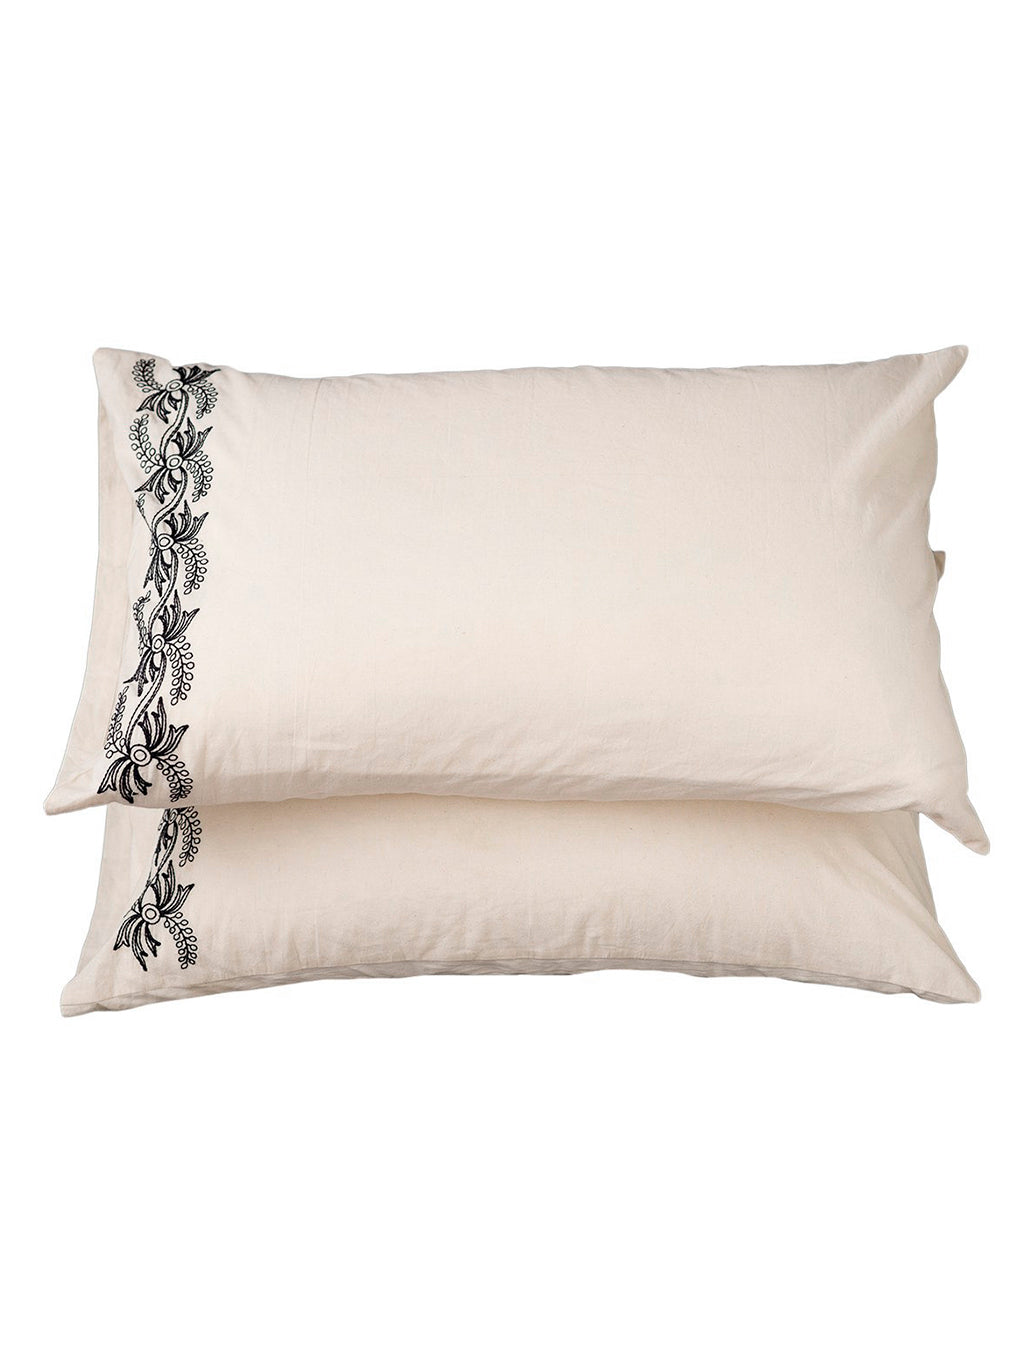 Lazybones Artist Sampler Pillowcases